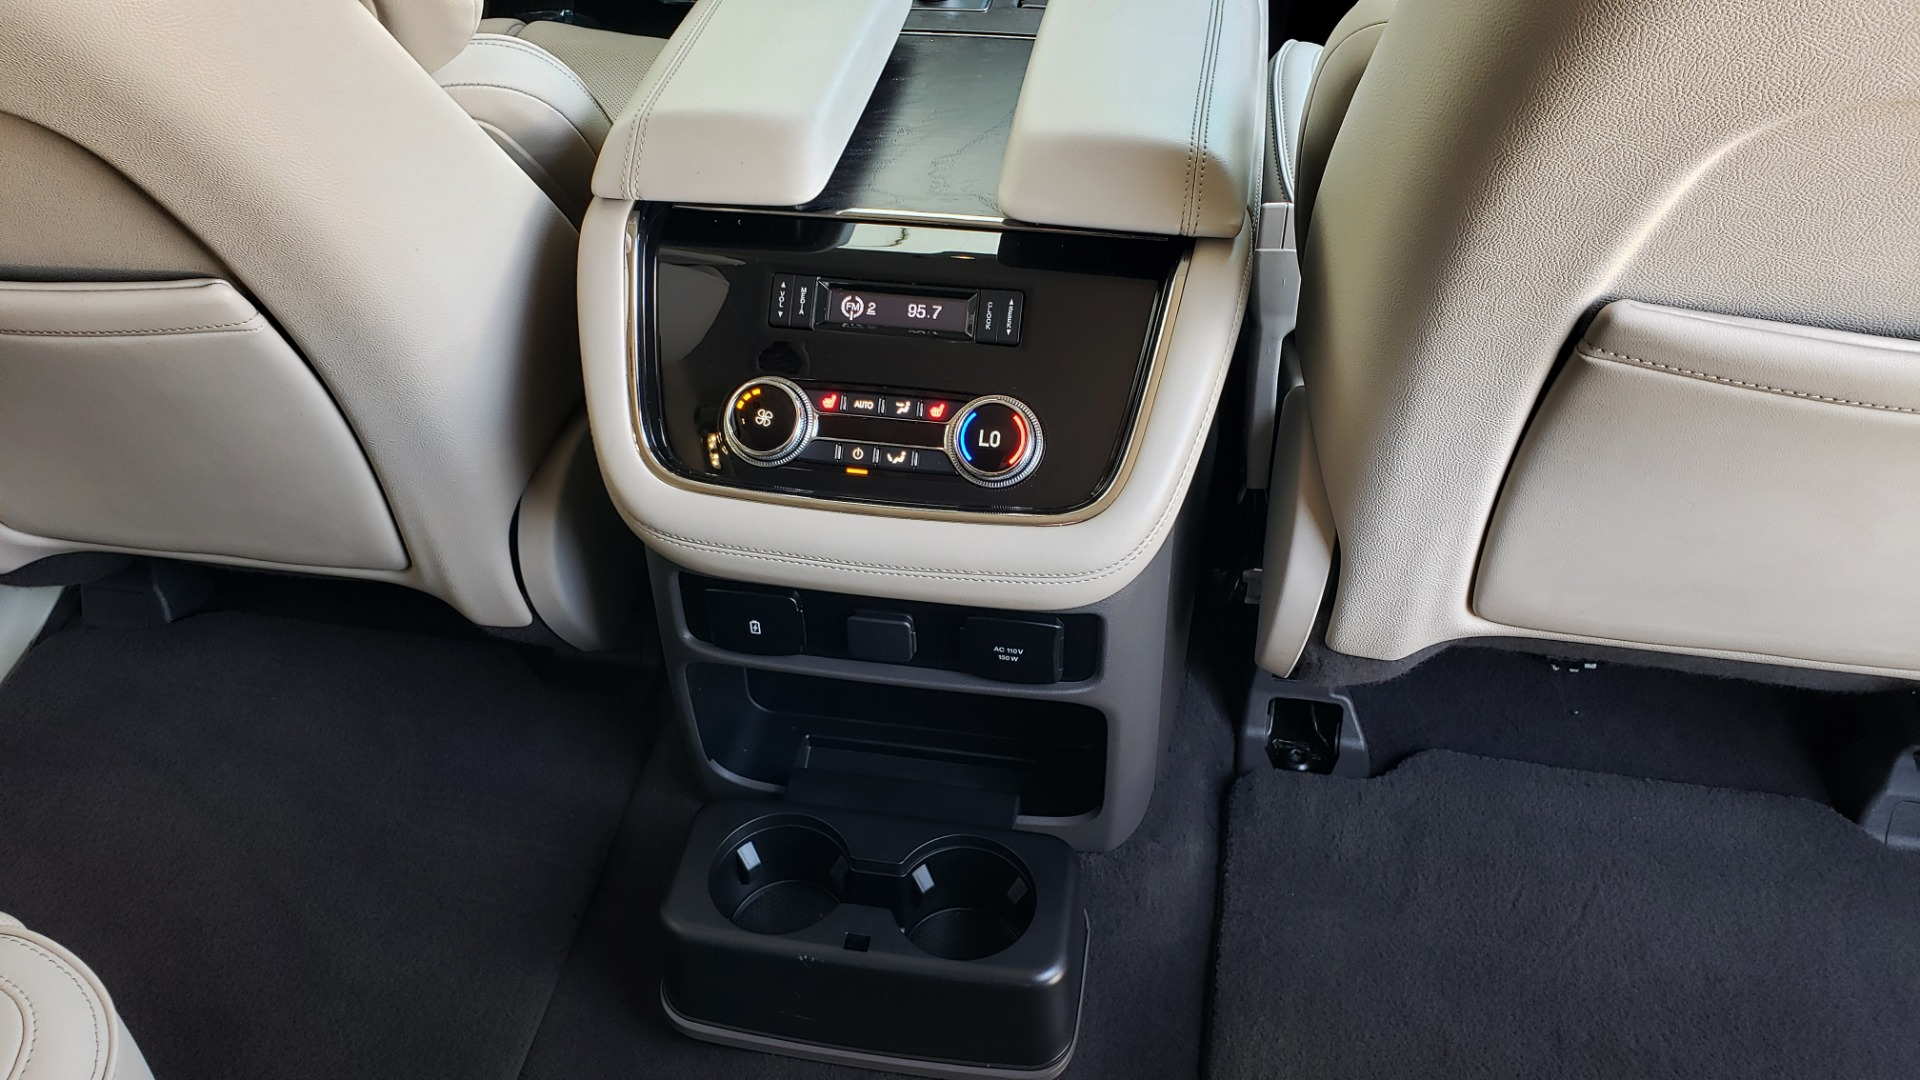 Used 2018 Lincoln NAVIGATOR PREMIERE 4X2 / TWIN-TURBO V6 / NAV / 3-ROW / REARVIEW for sale Sold at Formula Imports in Charlotte NC 28227 85